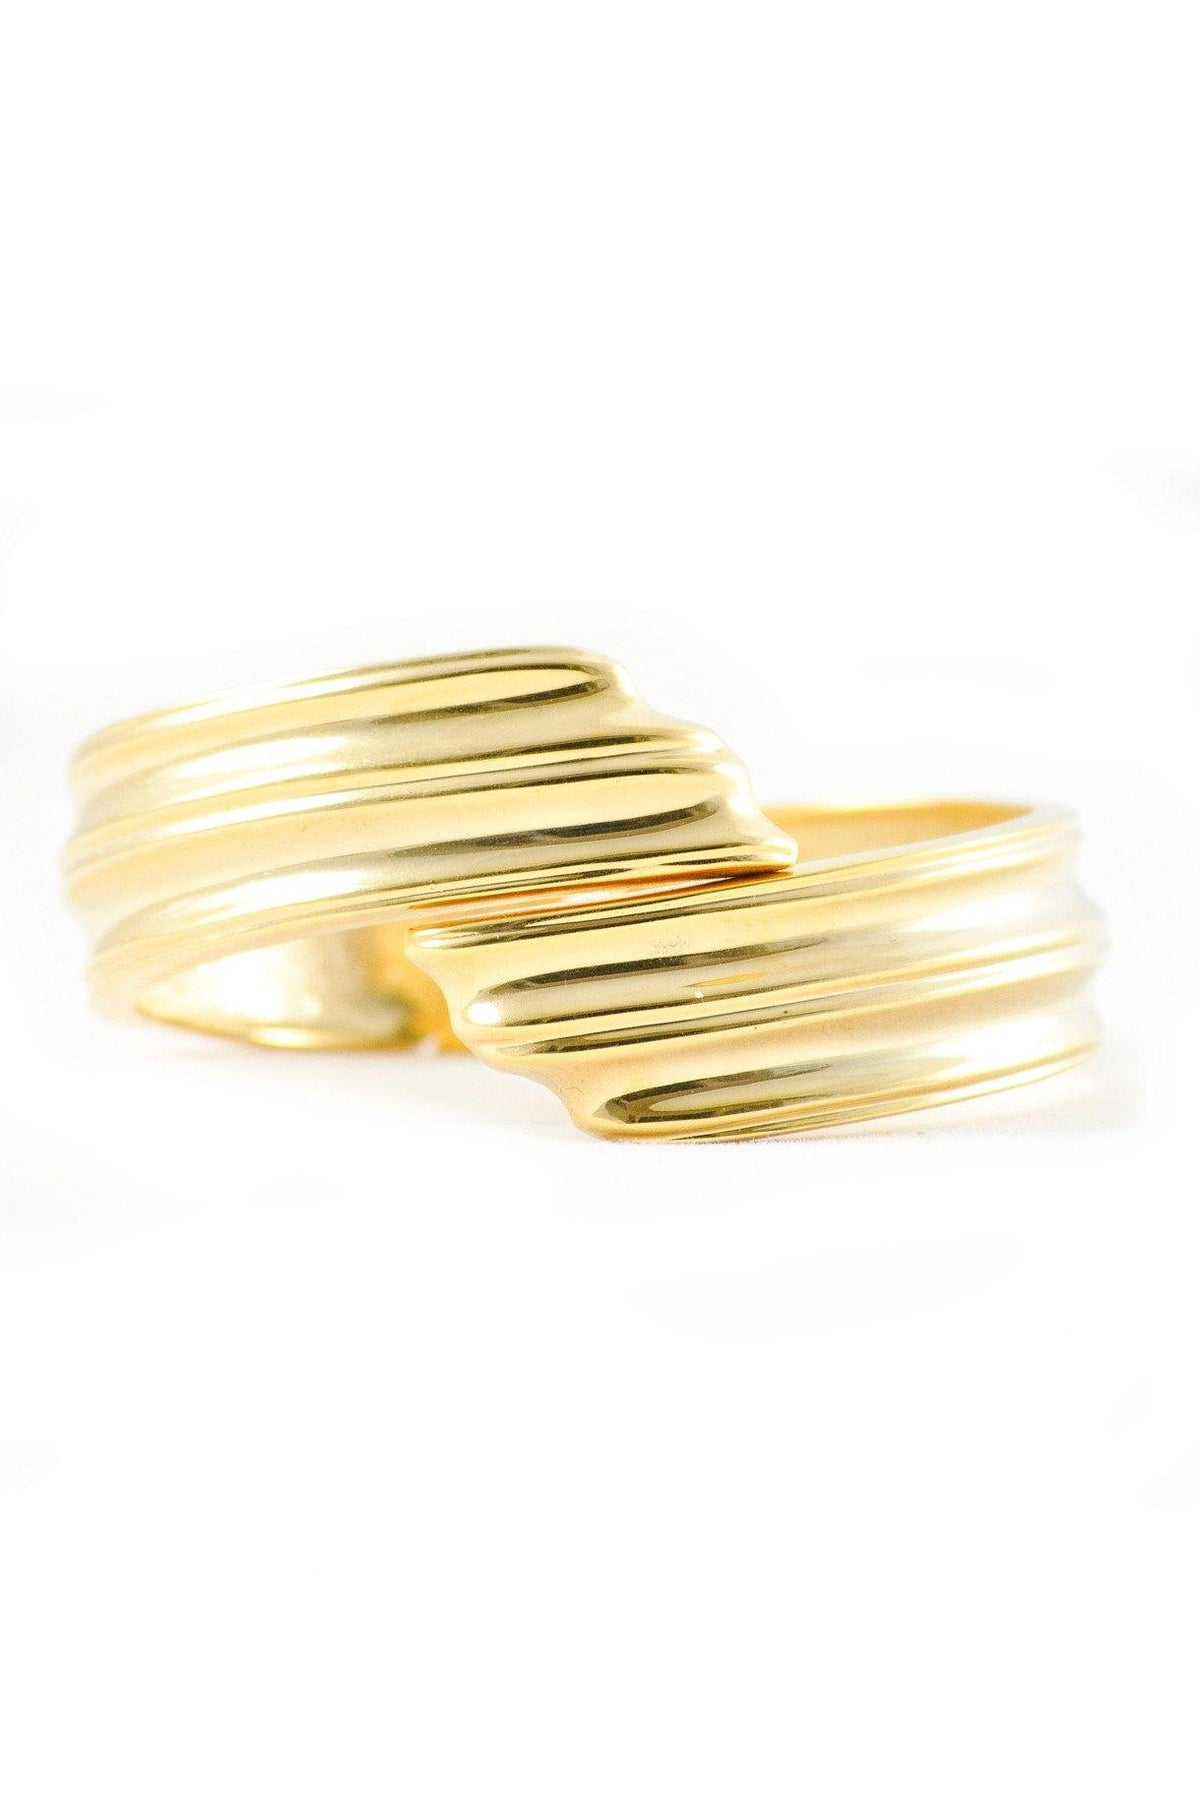 80's Vintage Textured Gold Bangle